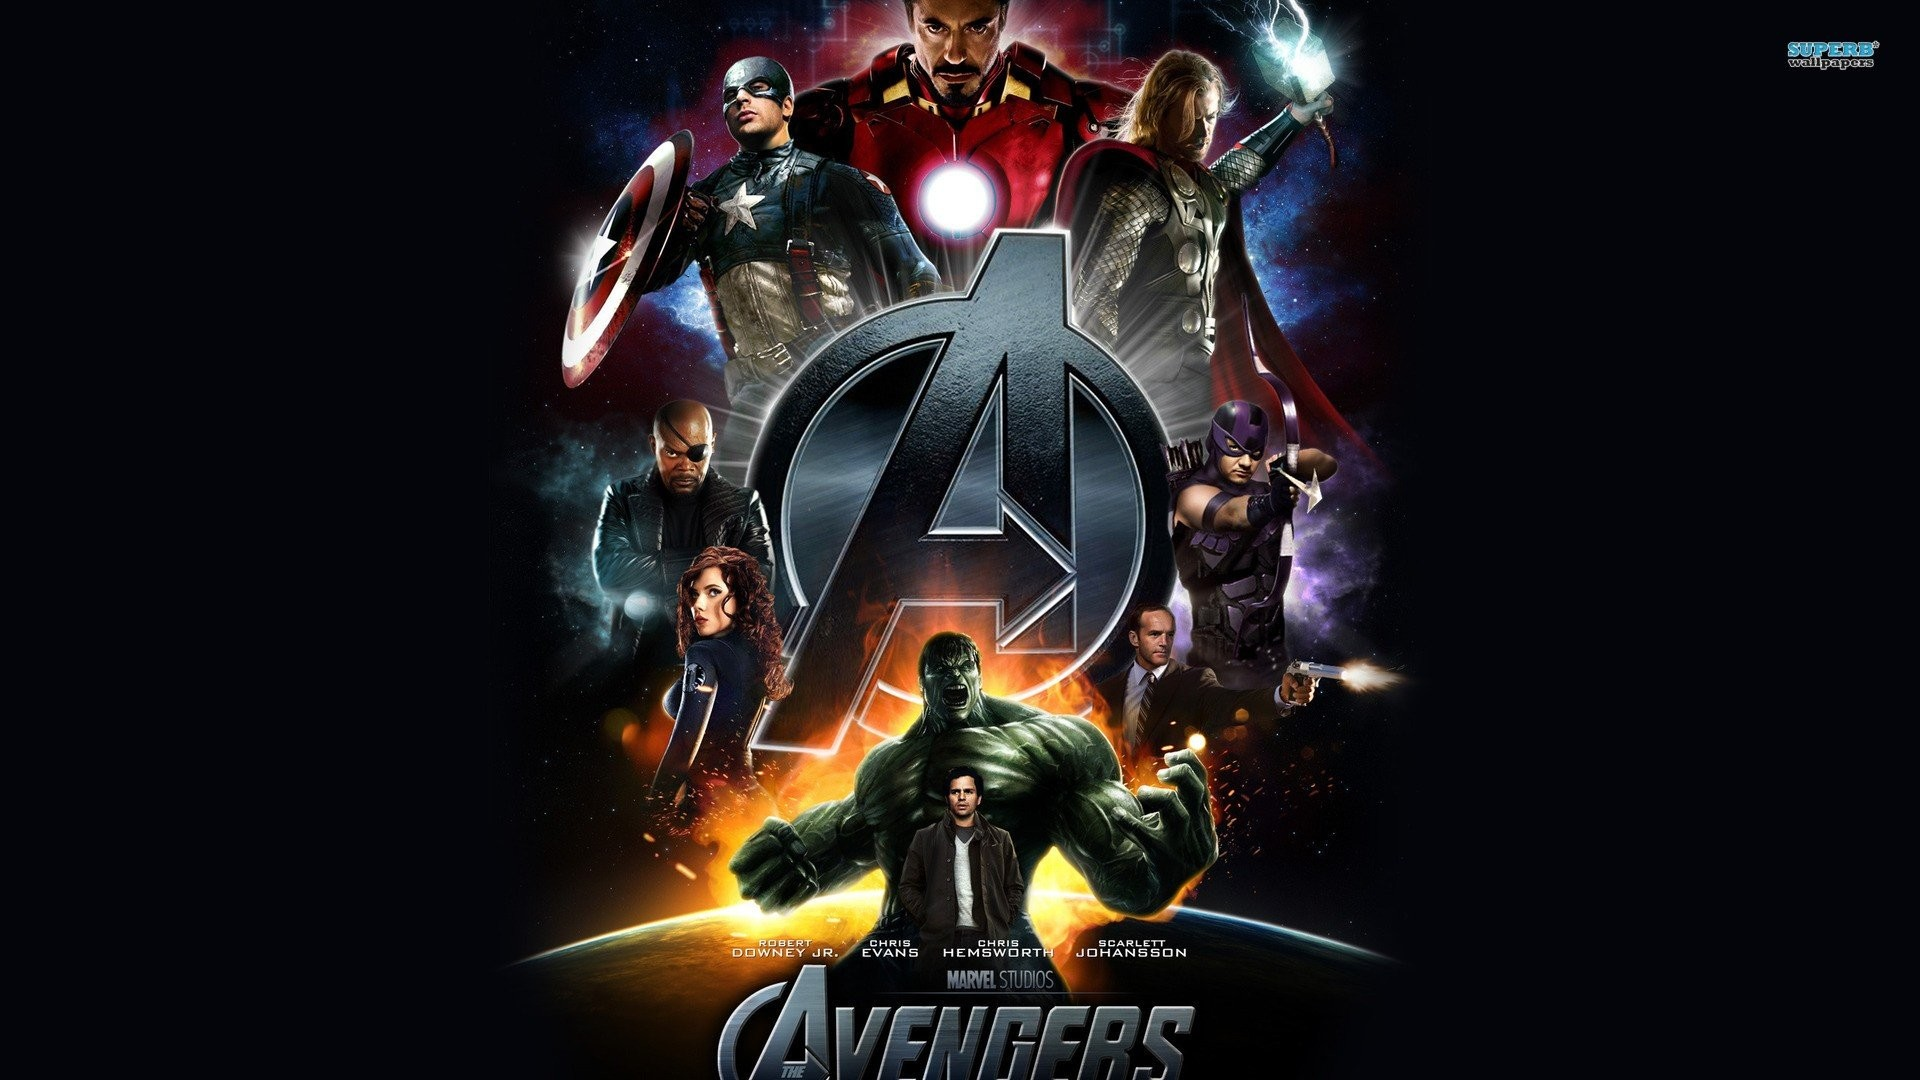 nice iron man fond d'écran iphone mobile android-62 · Avengers  WallpaperIphone …